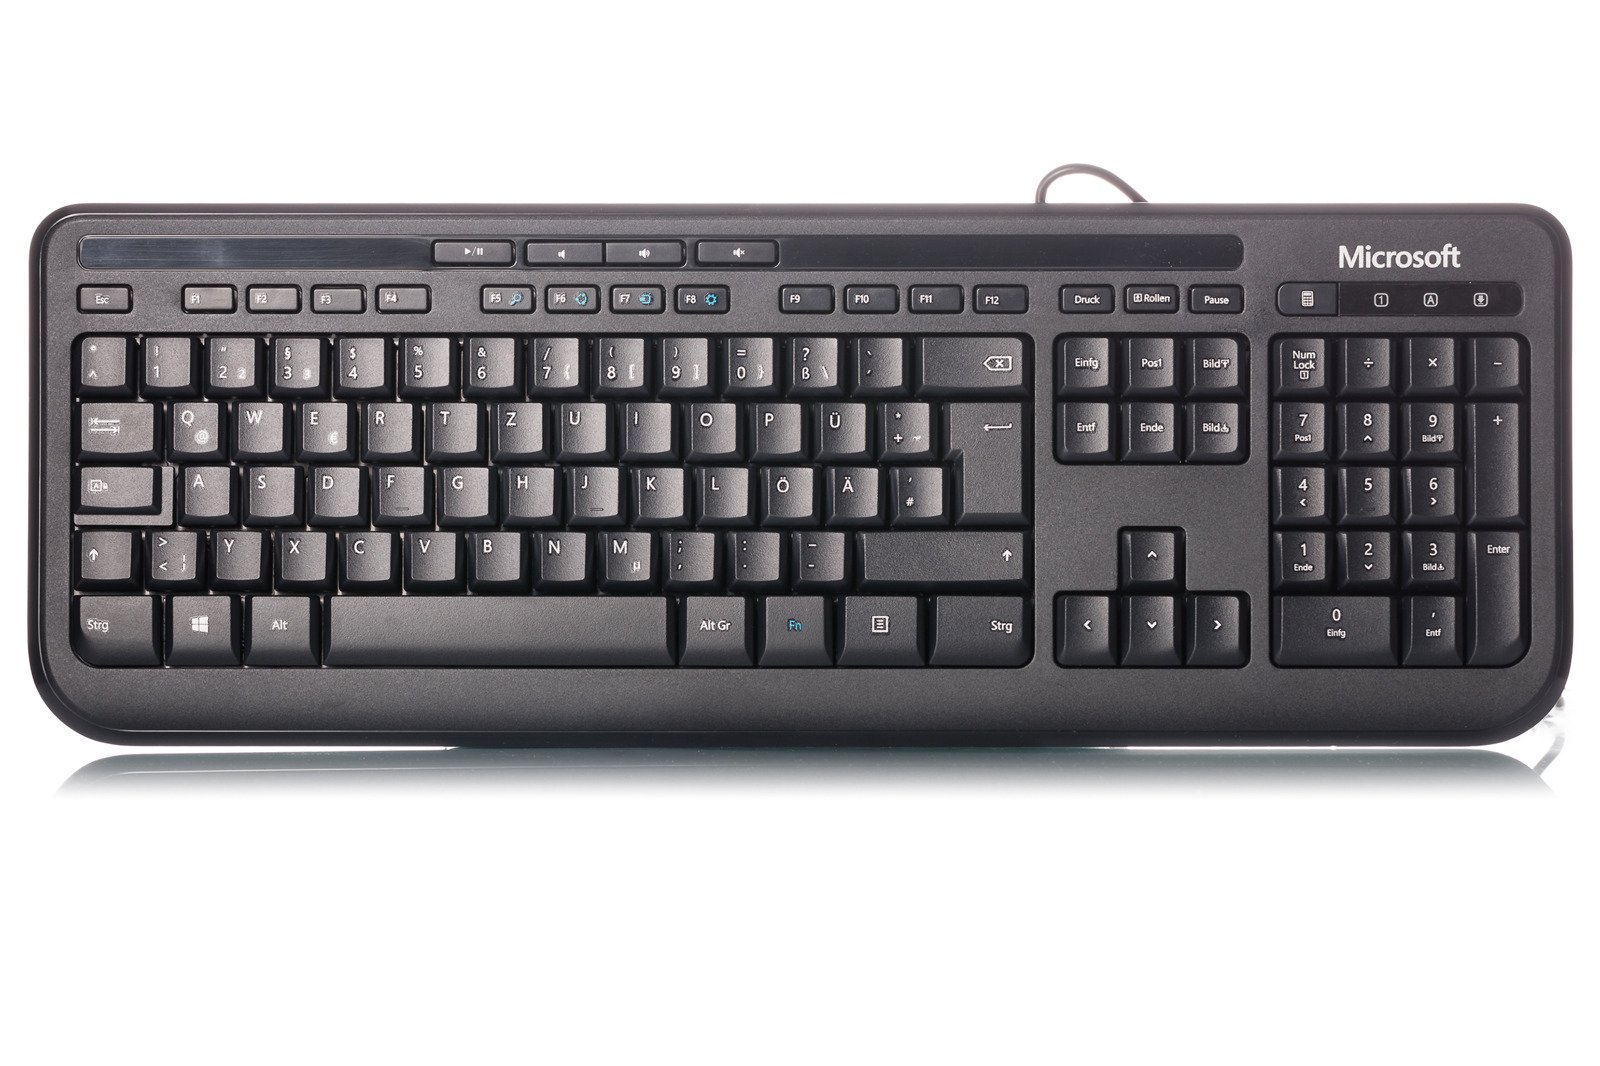 microsoft wired keyboard 600 black german like new german black computers peripherals. Black Bedroom Furniture Sets. Home Design Ideas